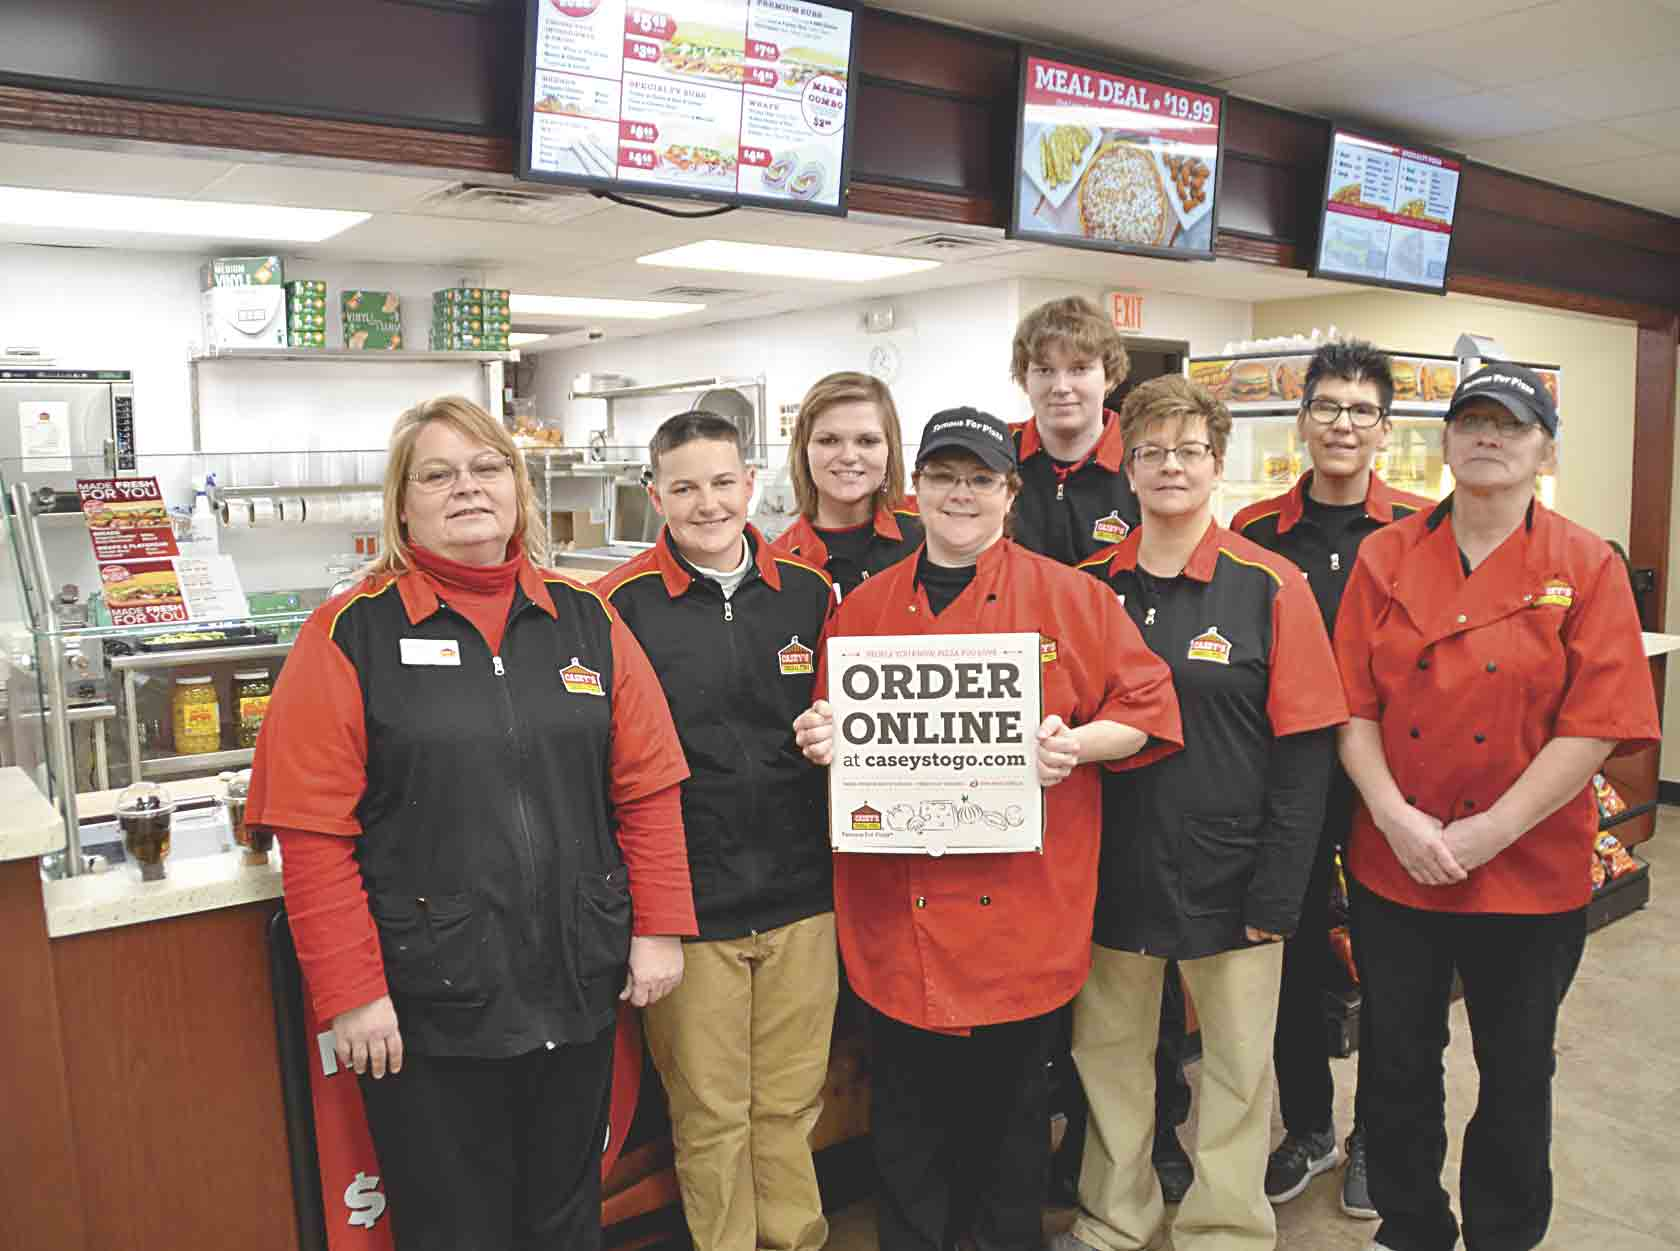 Casey's General Store in Clermont will host a Grand Reopening event on Friday, Jan. 12, to celebrate the expansion of the business's building. Casey's employees, including (front, l-r) general manager Henrietta De La Rosa, Lisa LaBrec, and Michelle Welsch; (second row)...